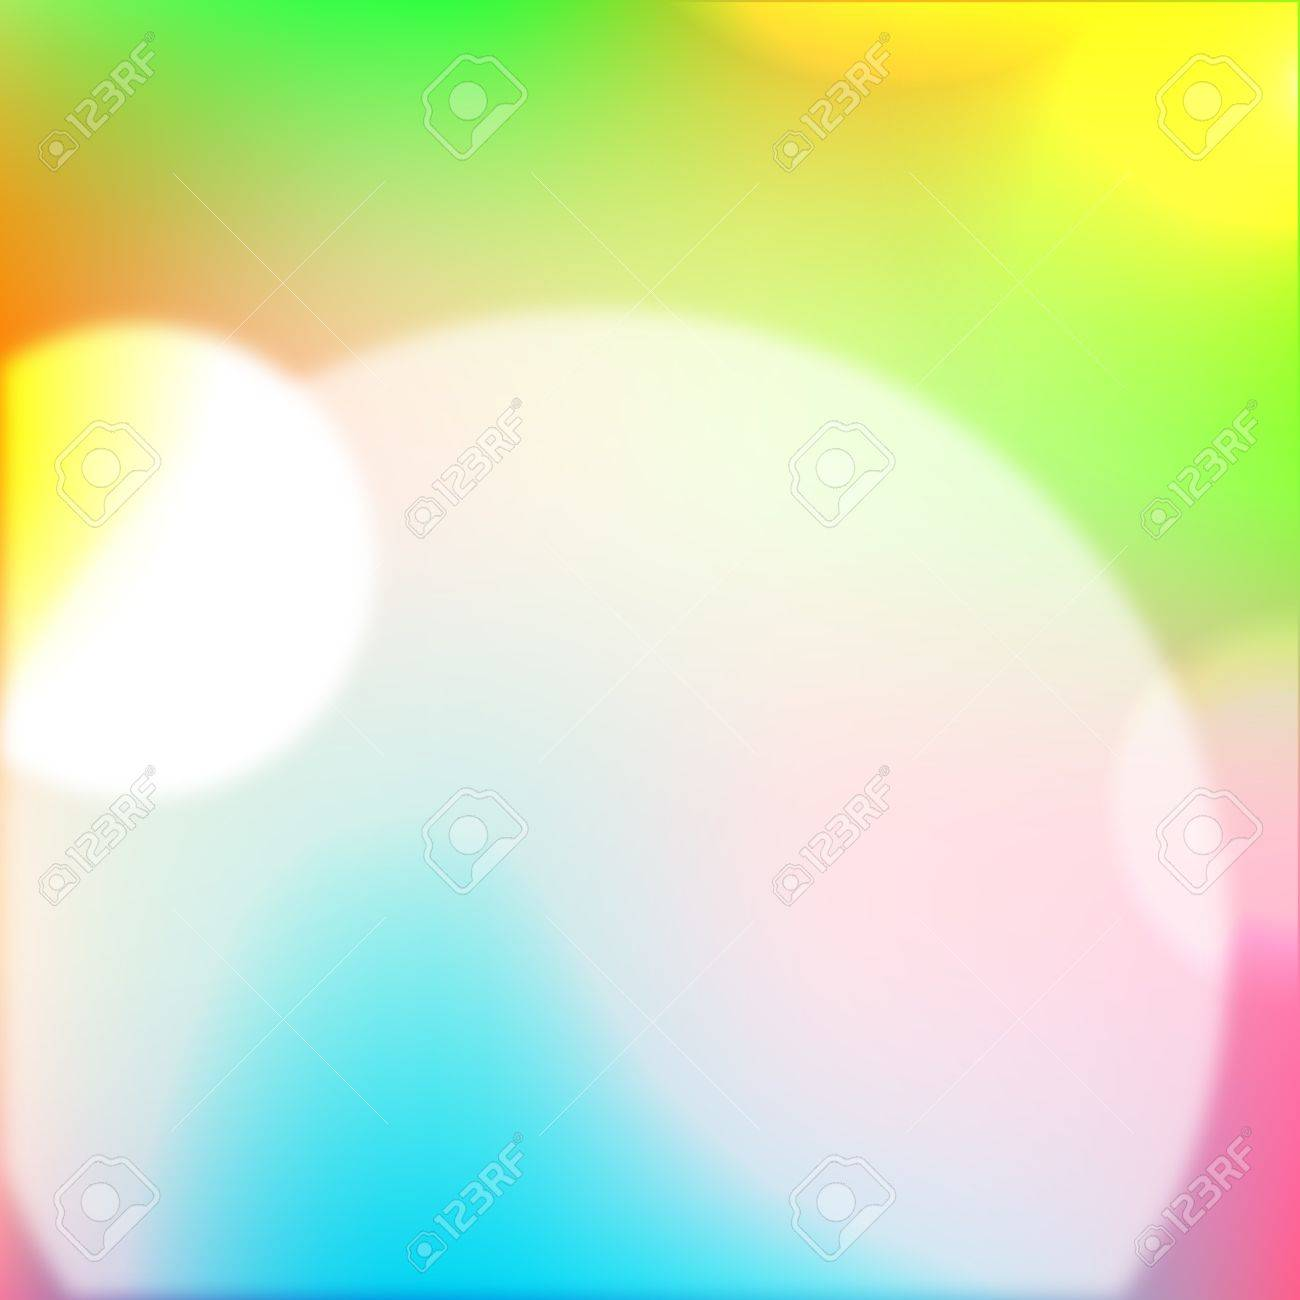 Abstract background EPS10 - 12494327